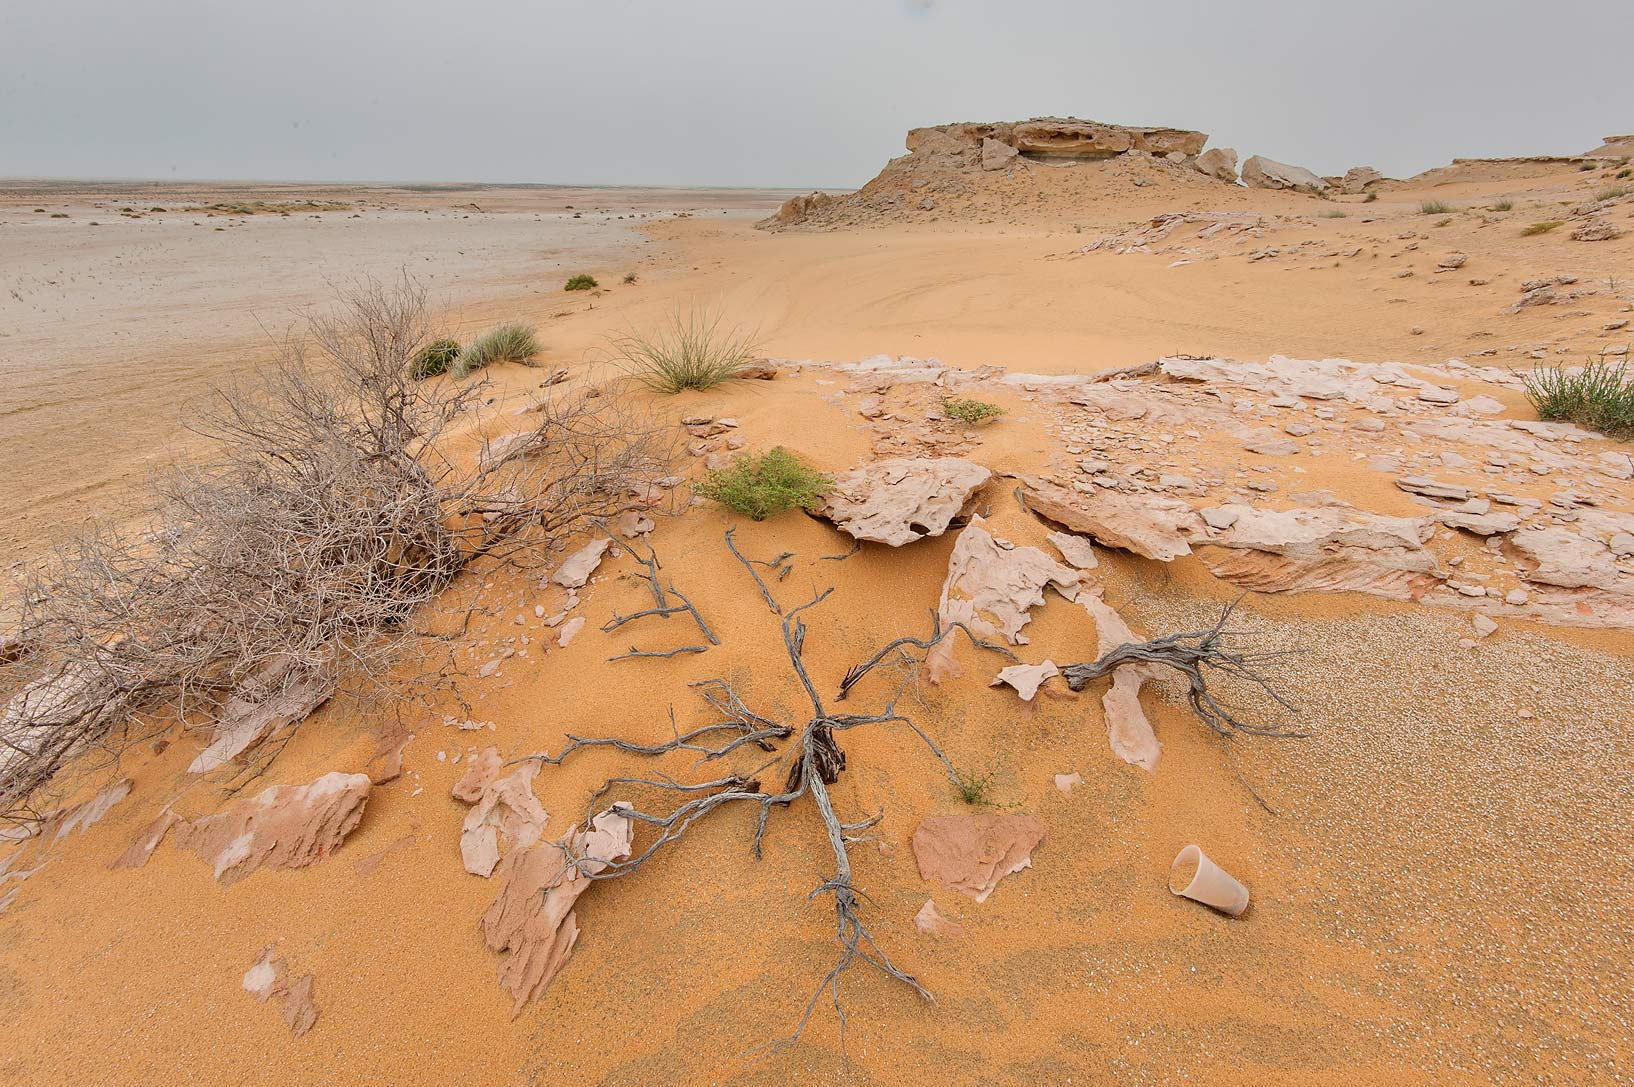 Orange windblown sand near limestone cliffs in...Reserve near Abu Samra. Southern Qatar